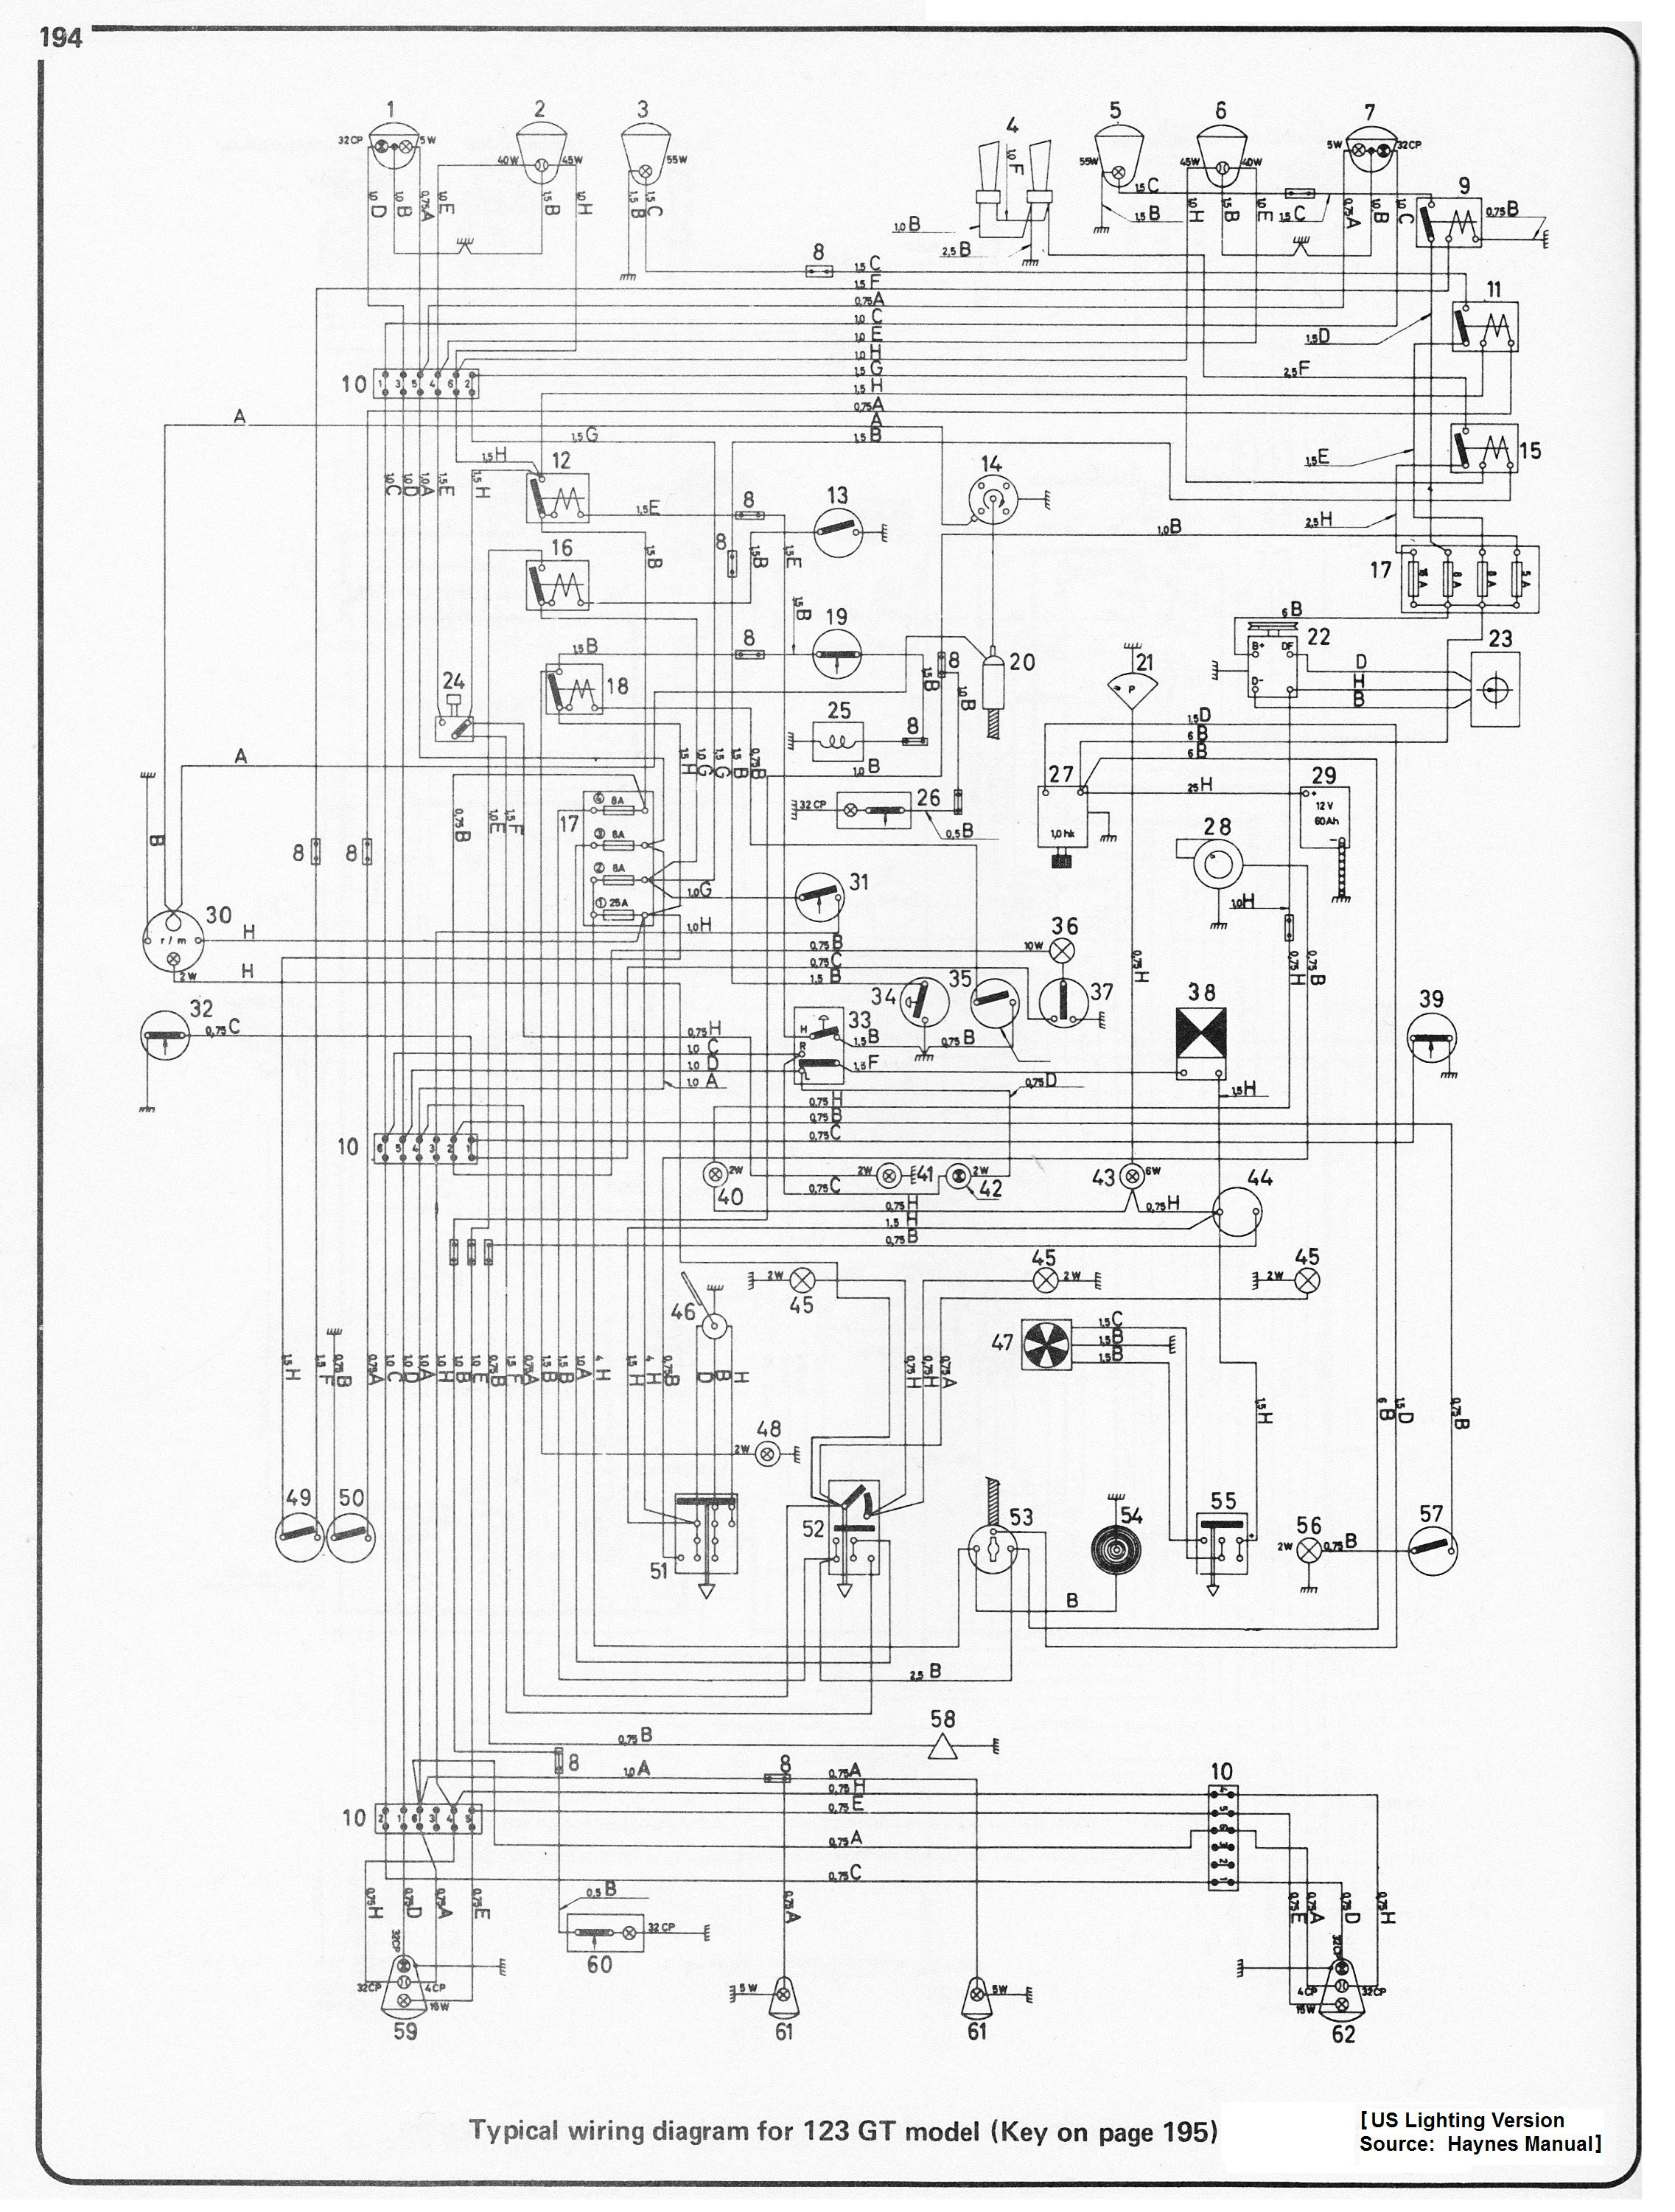 rb20det wiring harness diagram rb20det wiring diagram pdf efcaviation com design [ 2273 x 3001 Pixel ]